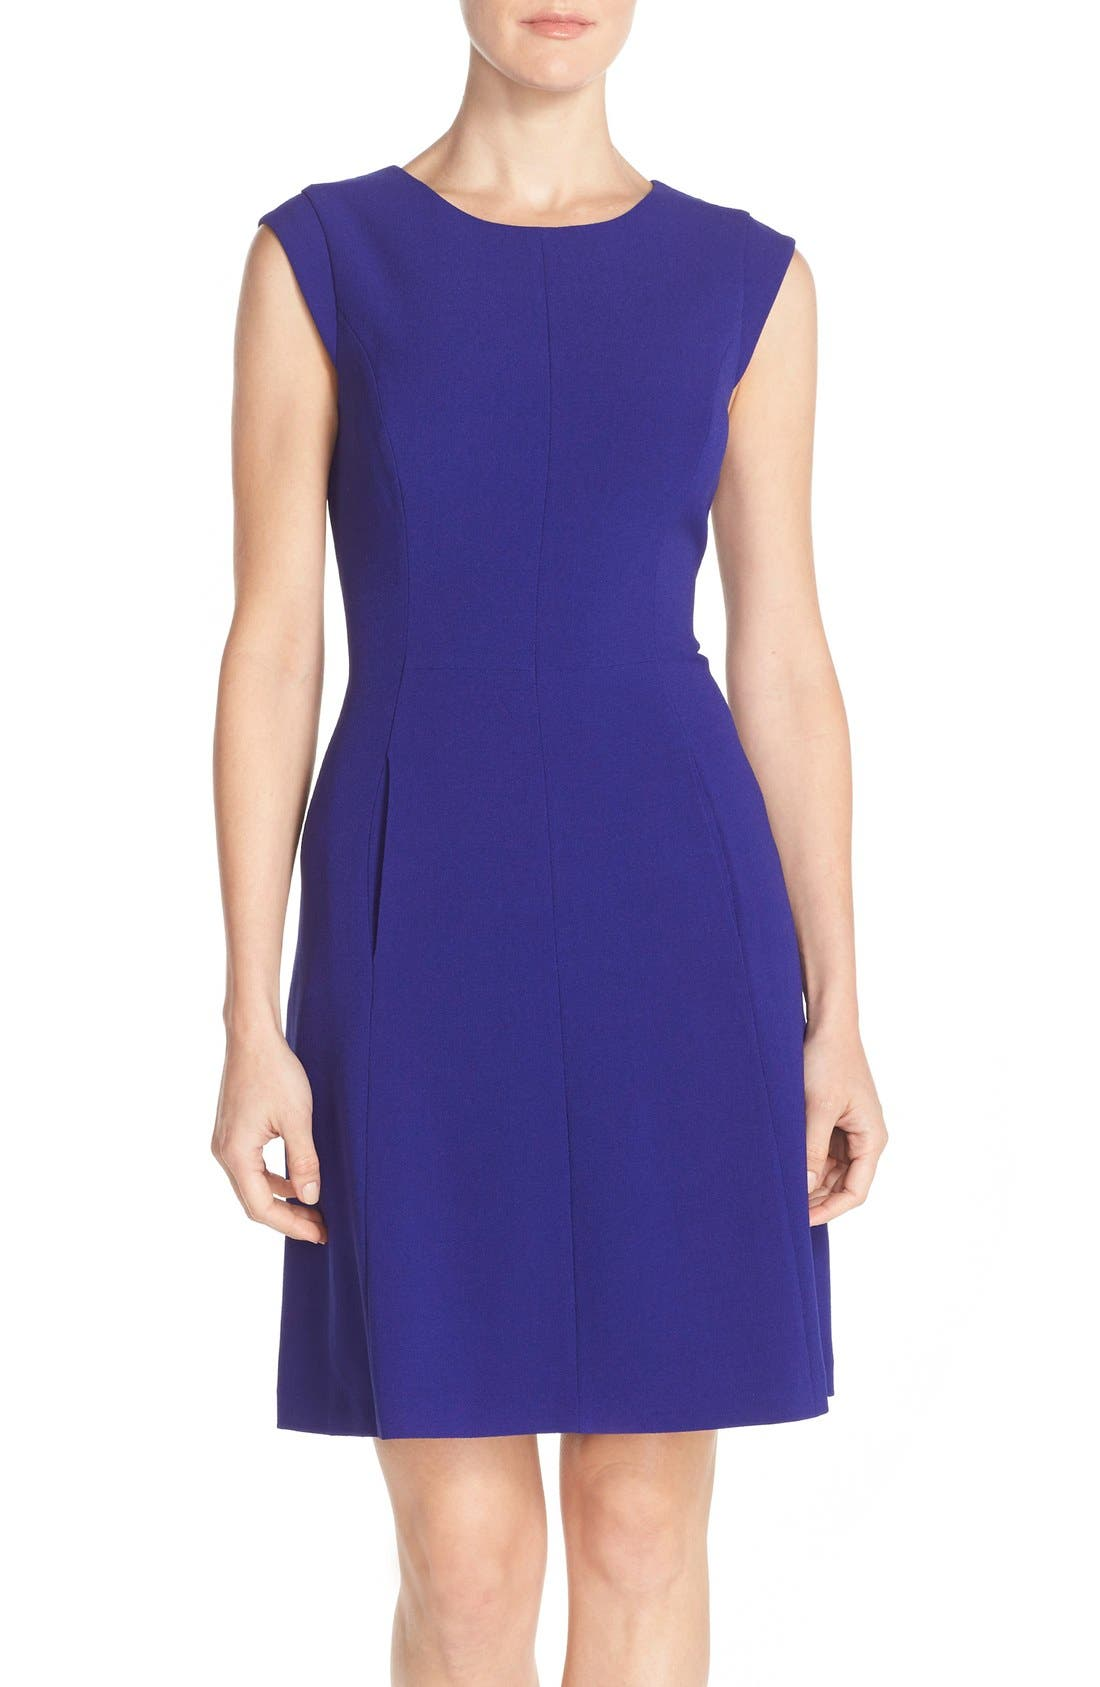 Main Image - Vince Camuto Seamed Crepe Fit & Flare Dress (Regular & Petite)